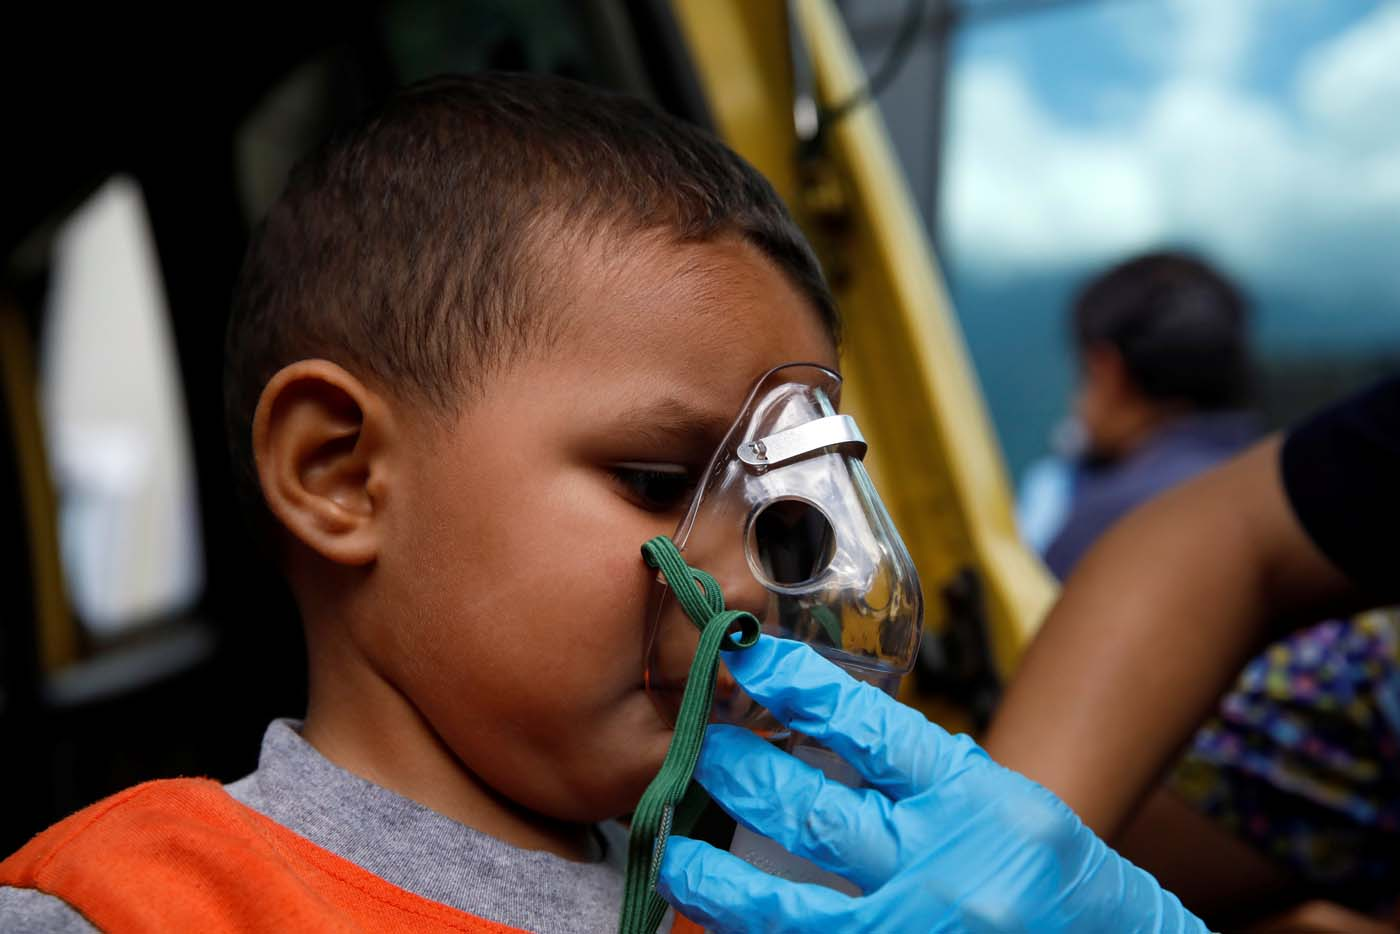 A child gets medical attention outside a shopping mall after smoke from tear gas fired by security forces got inside of it during clashes at a rally against Venezuelan President Nicolas Maduro's government in Caracas, Venezuela, July 6, 2017. REUTERS/Carlos Garcia Rawlins